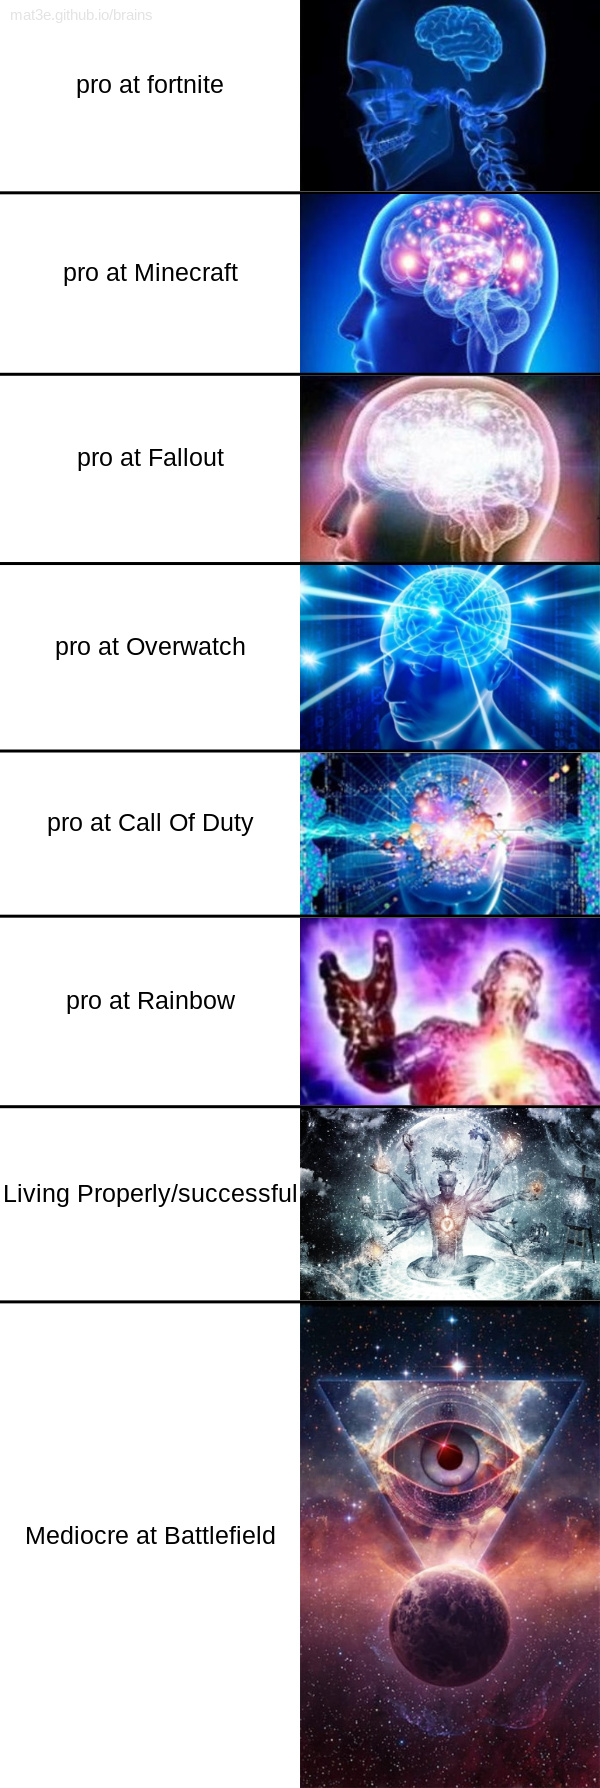 My first expanding brain meme